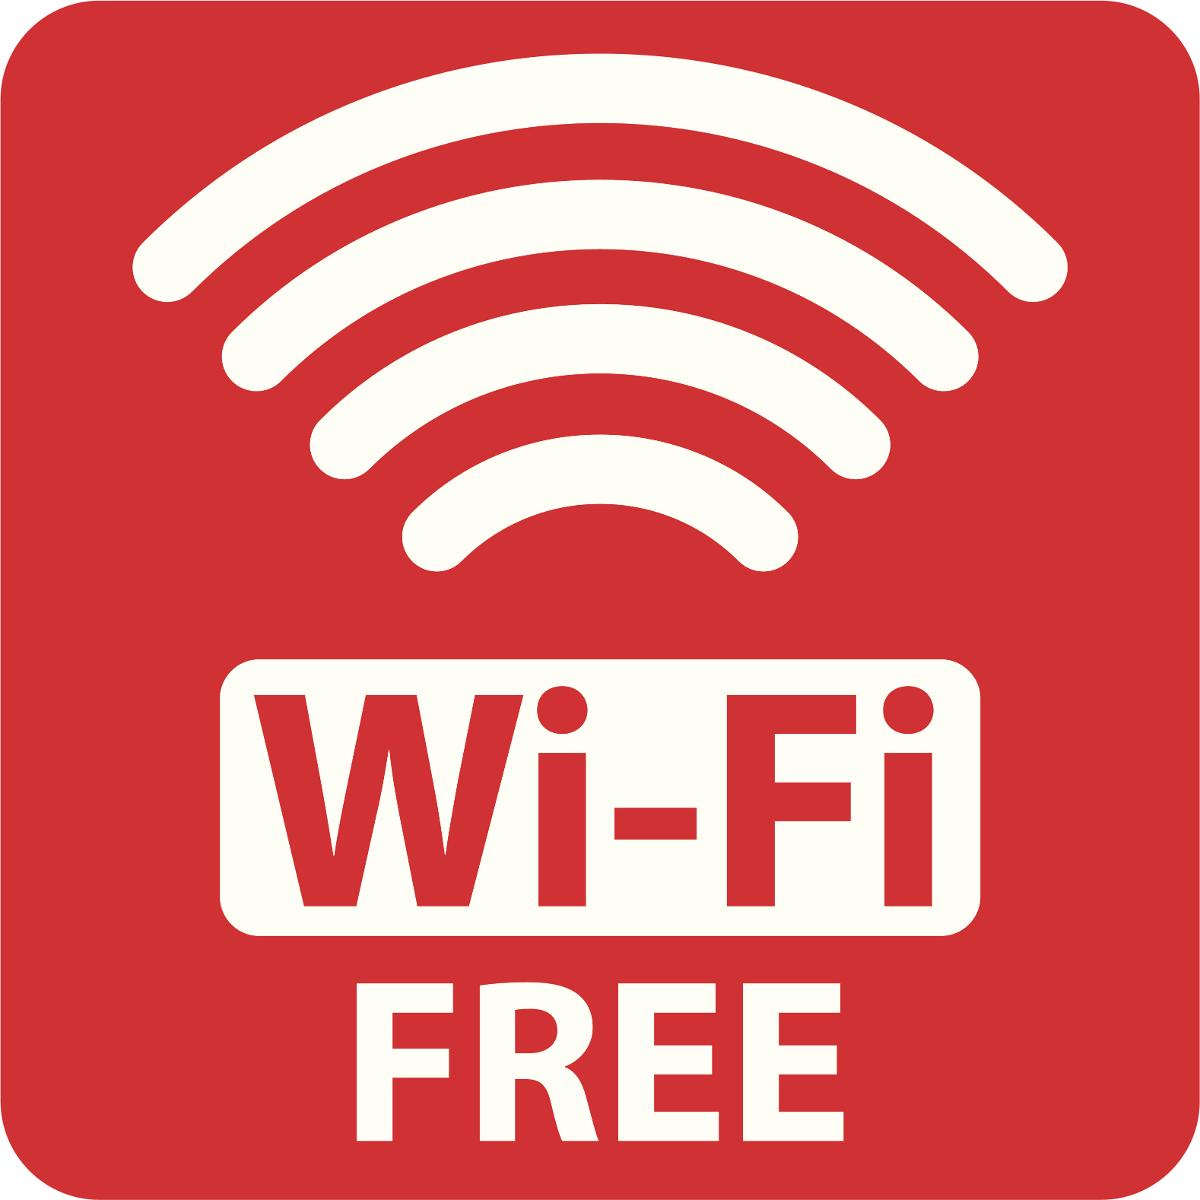 Free Wifi Logo Clipart Best - Clipart Kid